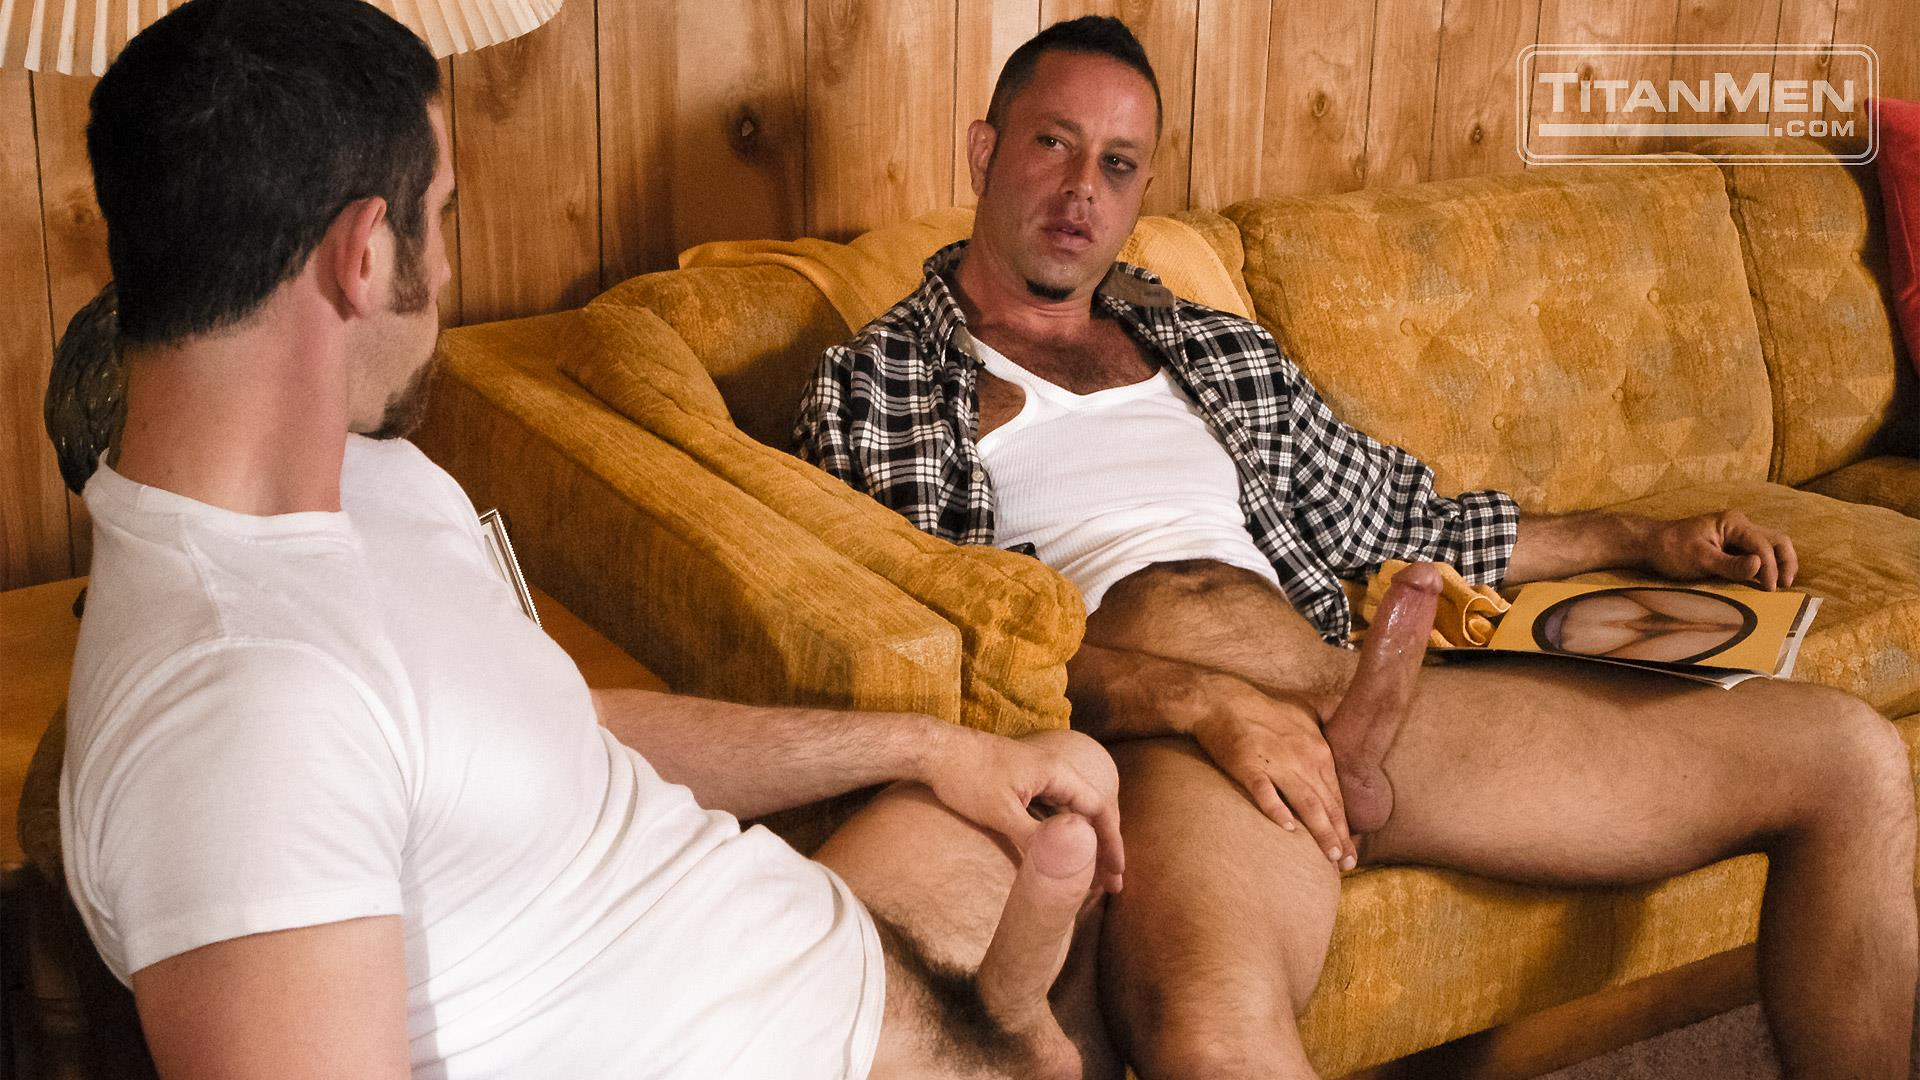 TitanMen-Joe-Gage-Rednecks-With-Big-Cocks-Amateur-Gay-Porn-39 Big Cock Rednecks From TitanMen and Joe Gage